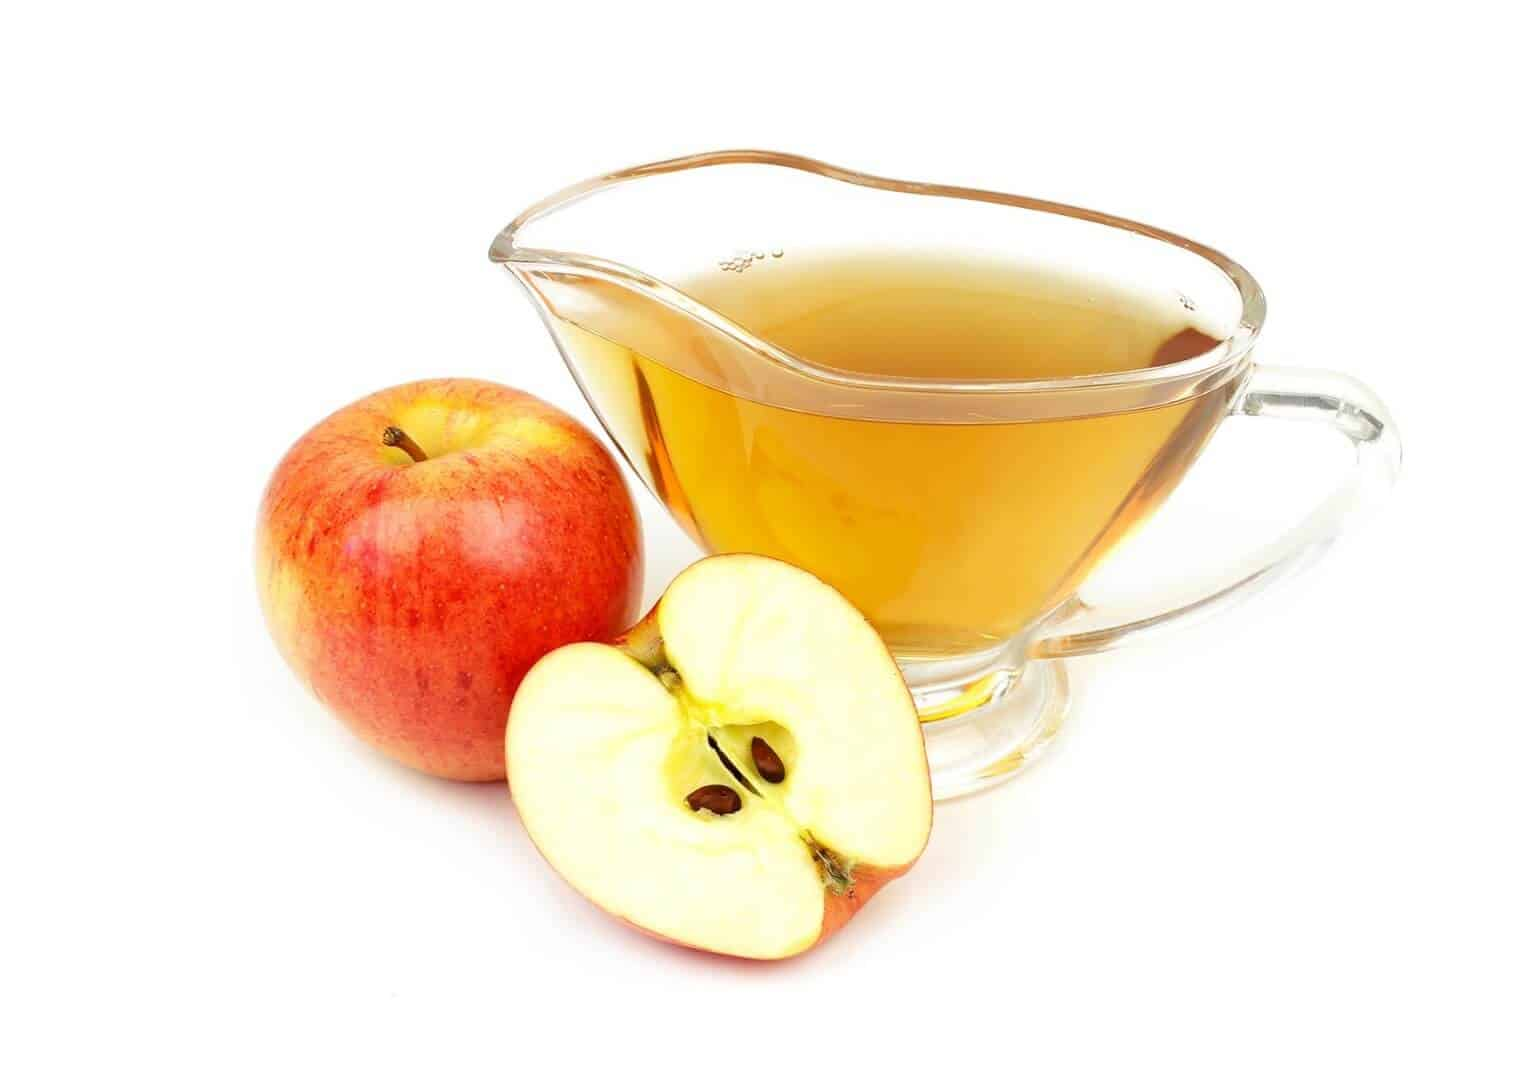 The impressive health benefits of apple cider vinegar include its ability to regulate blood sugar levels, boost weight loss, improve gut health, lower cholesterol levels, aid in detoxification, and enhance skin health. It also speeds up metabolism and provides relief from high blood pressure.